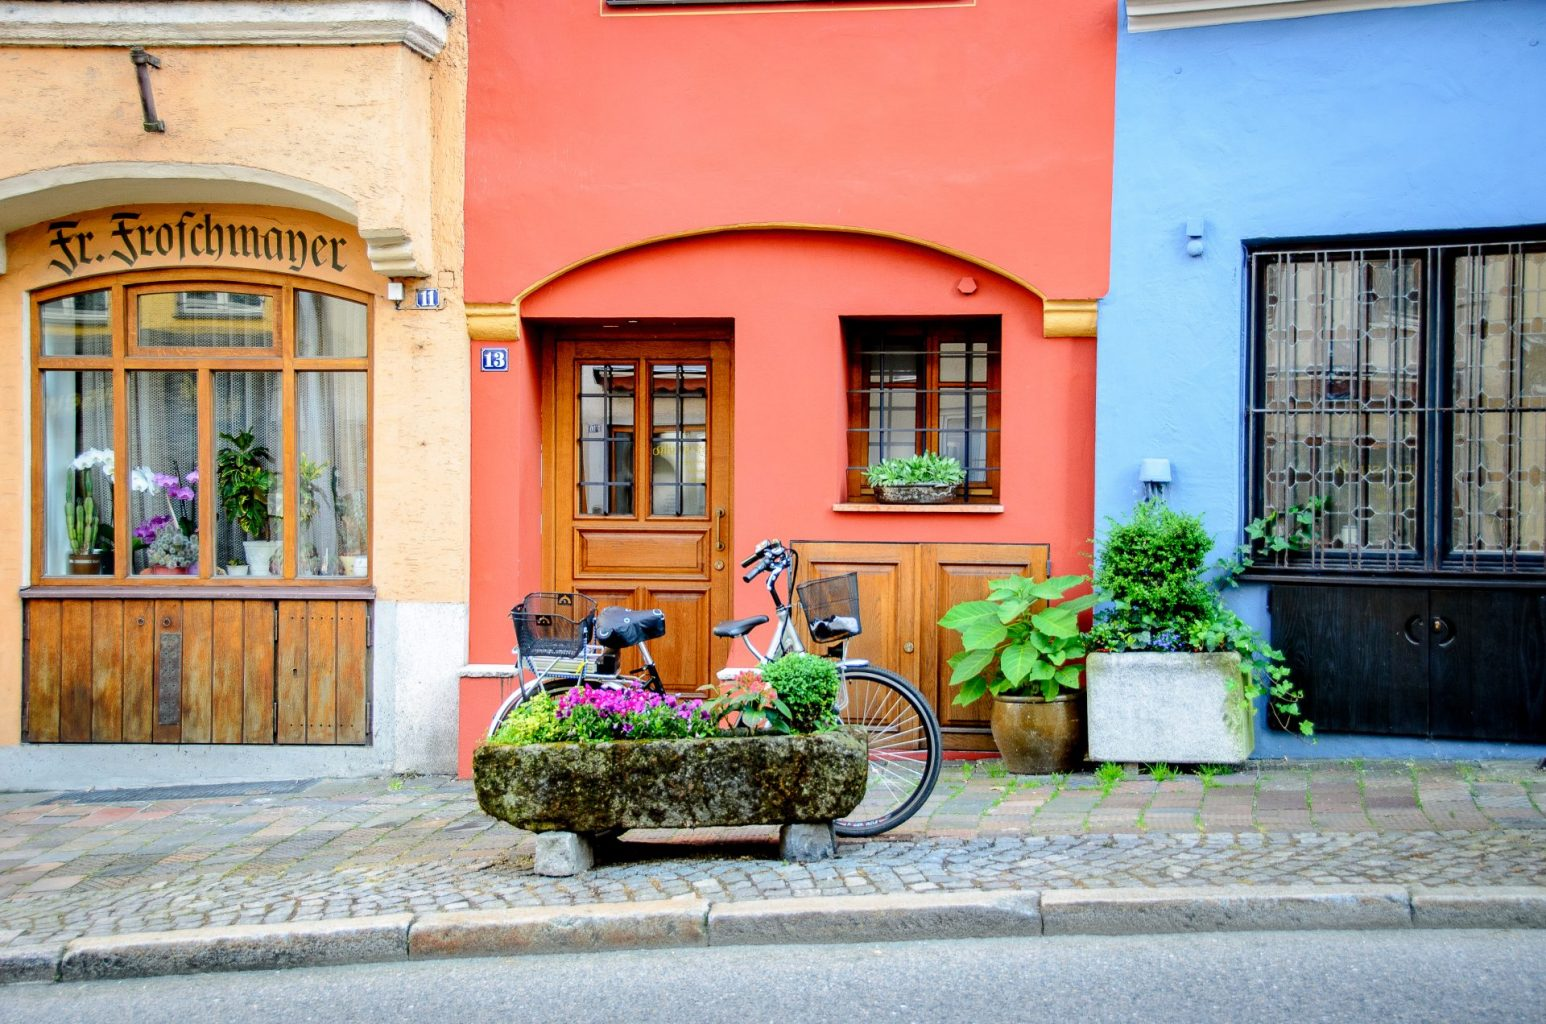 Hidden places: bike in front of buildings in Wasserburg, Germany